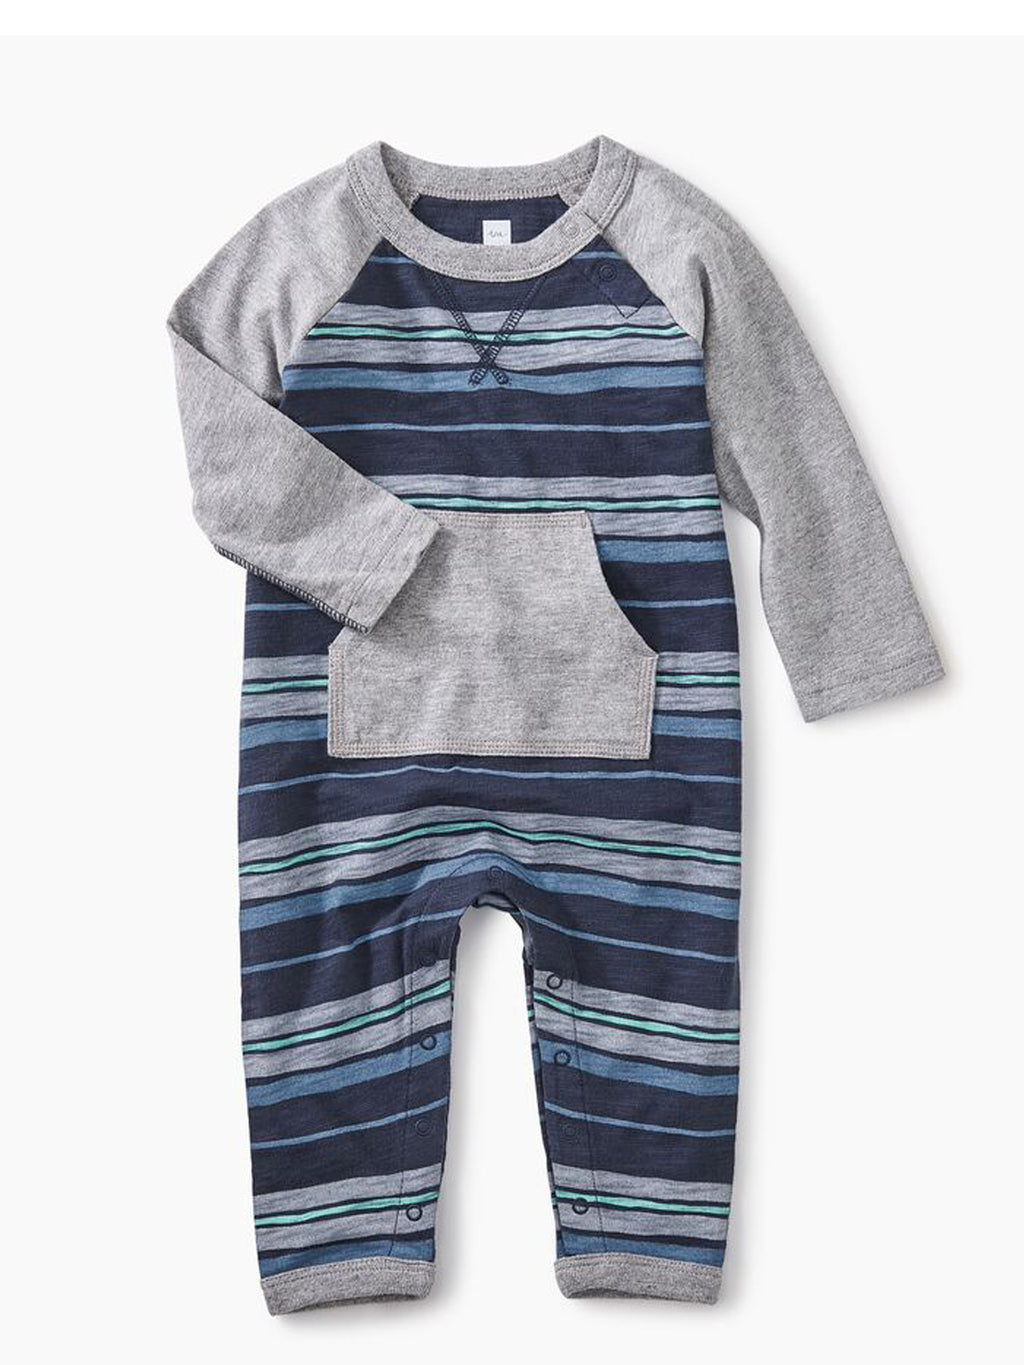 Baby Boy Striped Romper with Pocket